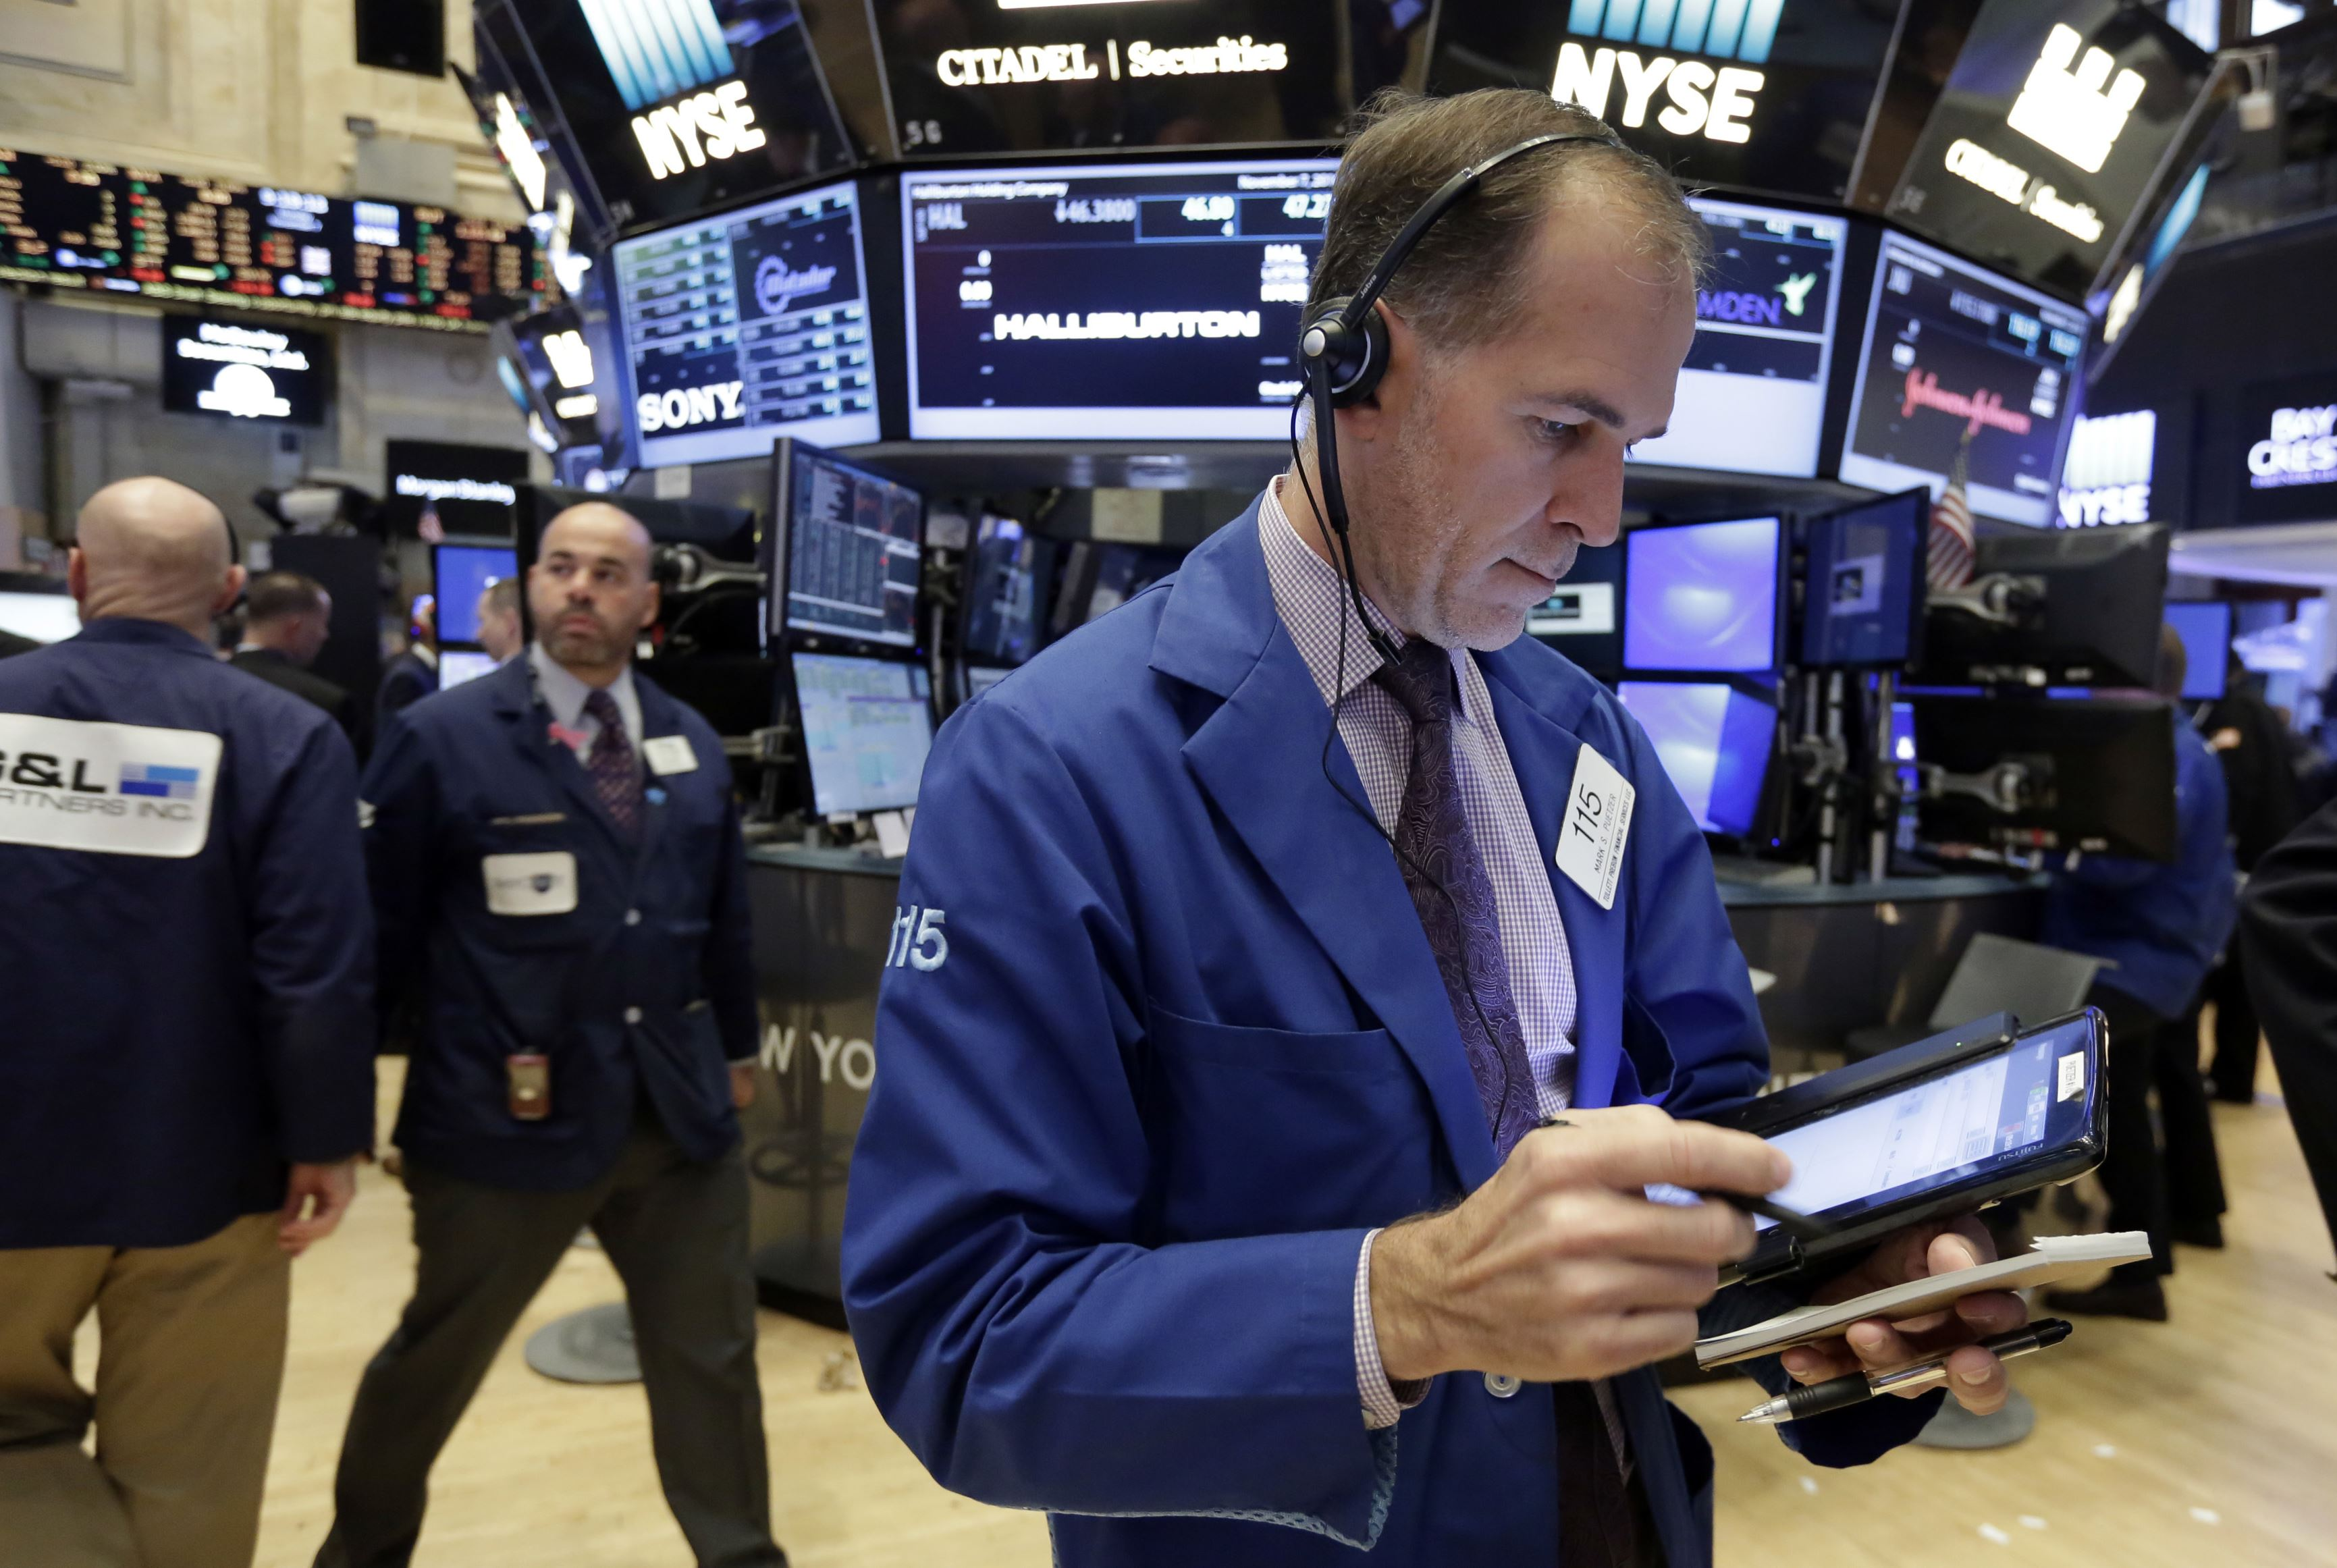 USA stocks sharply higher in early trading; oil rises